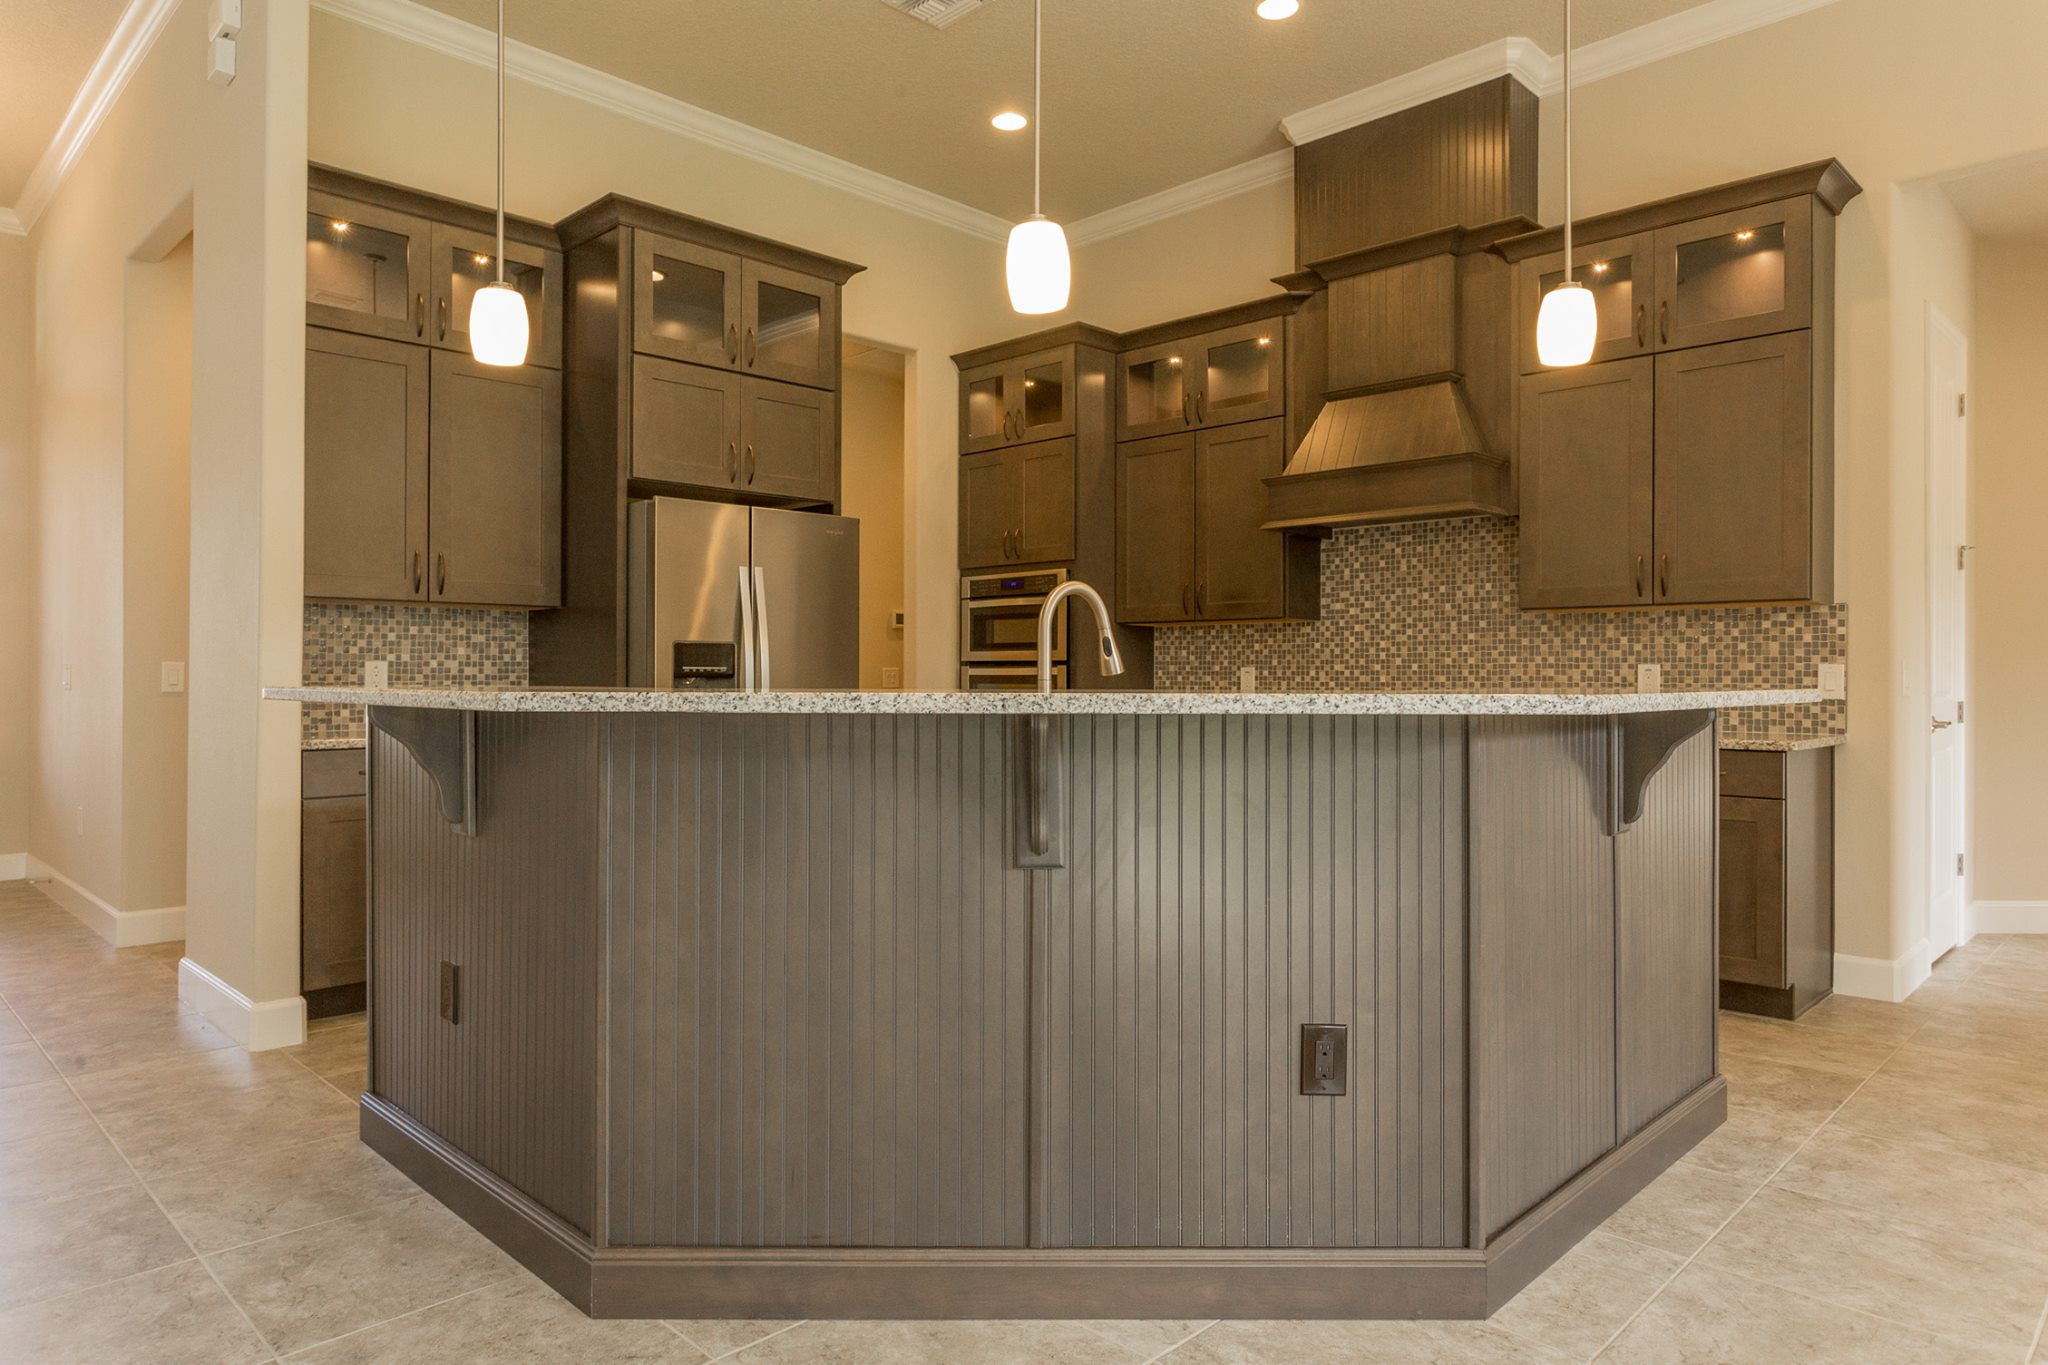 Marsh Kitchen Cabinets Marsh Cabinets High Point Nc Review Home Decor